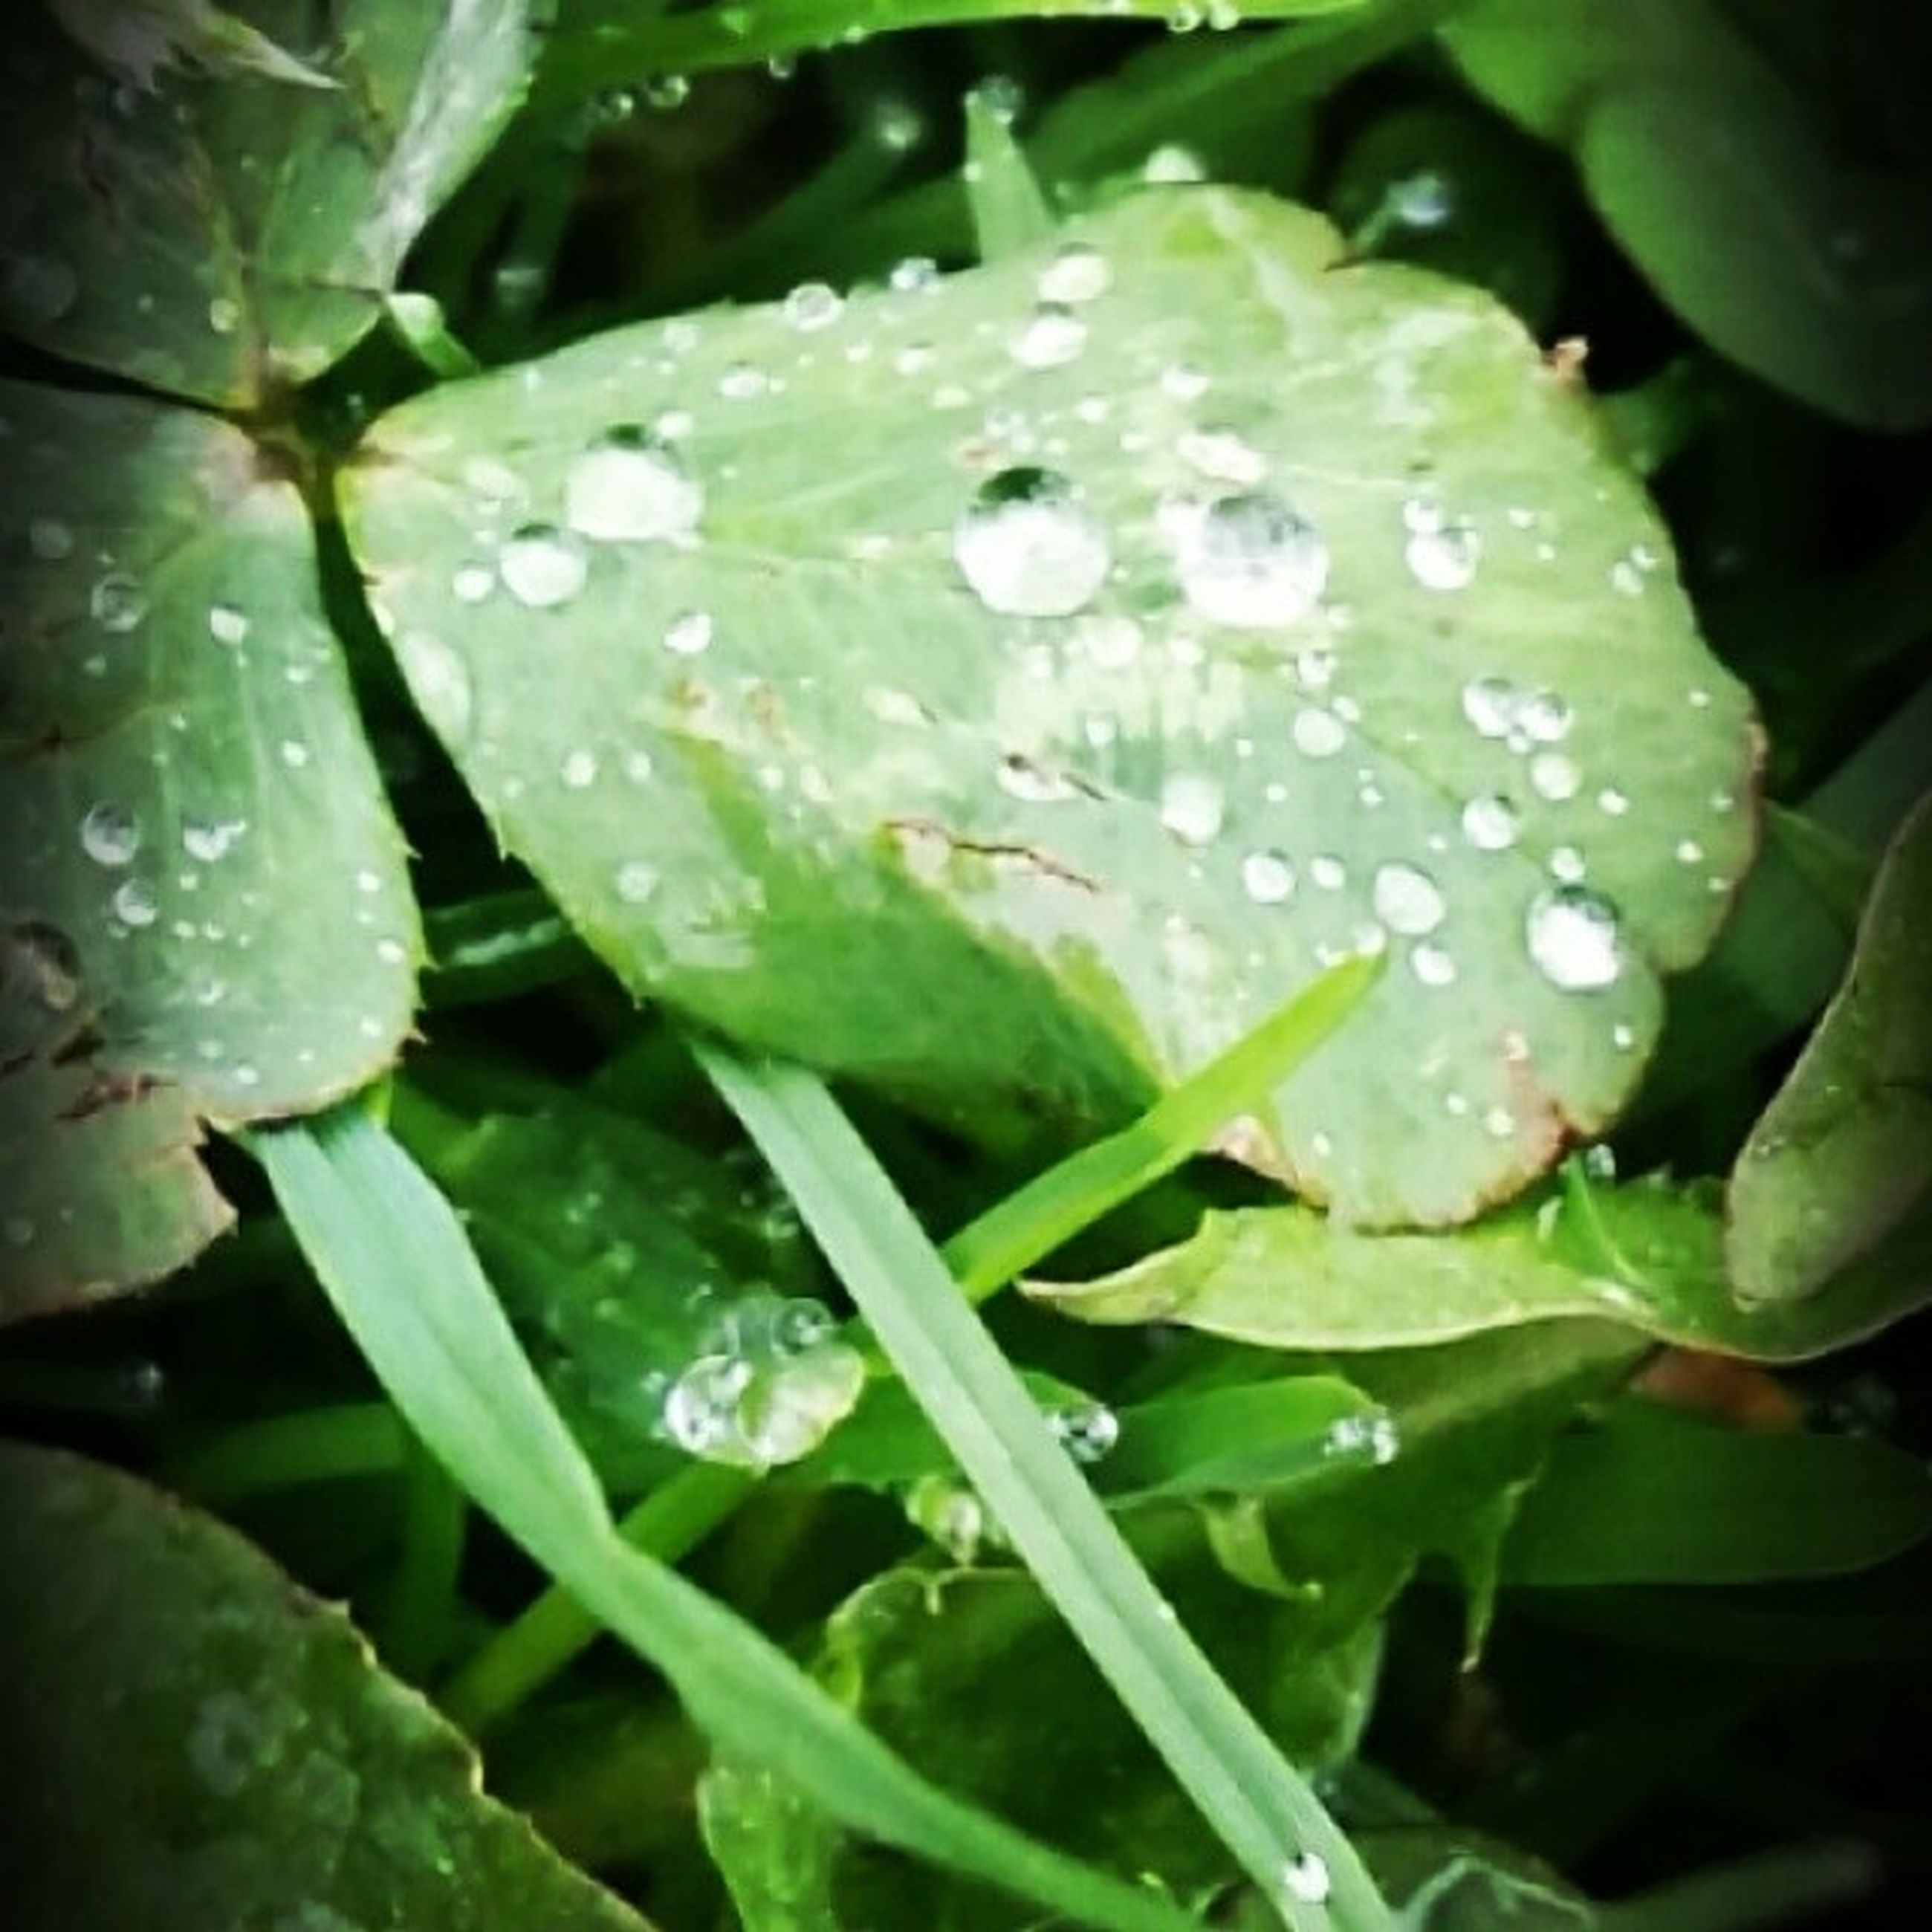 drop, water, wet, growth, leaf, green color, freshness, close-up, dew, nature, plant, beauty in nature, fragility, raindrop, rain, droplet, focus on foreground, water drop, weather, purity